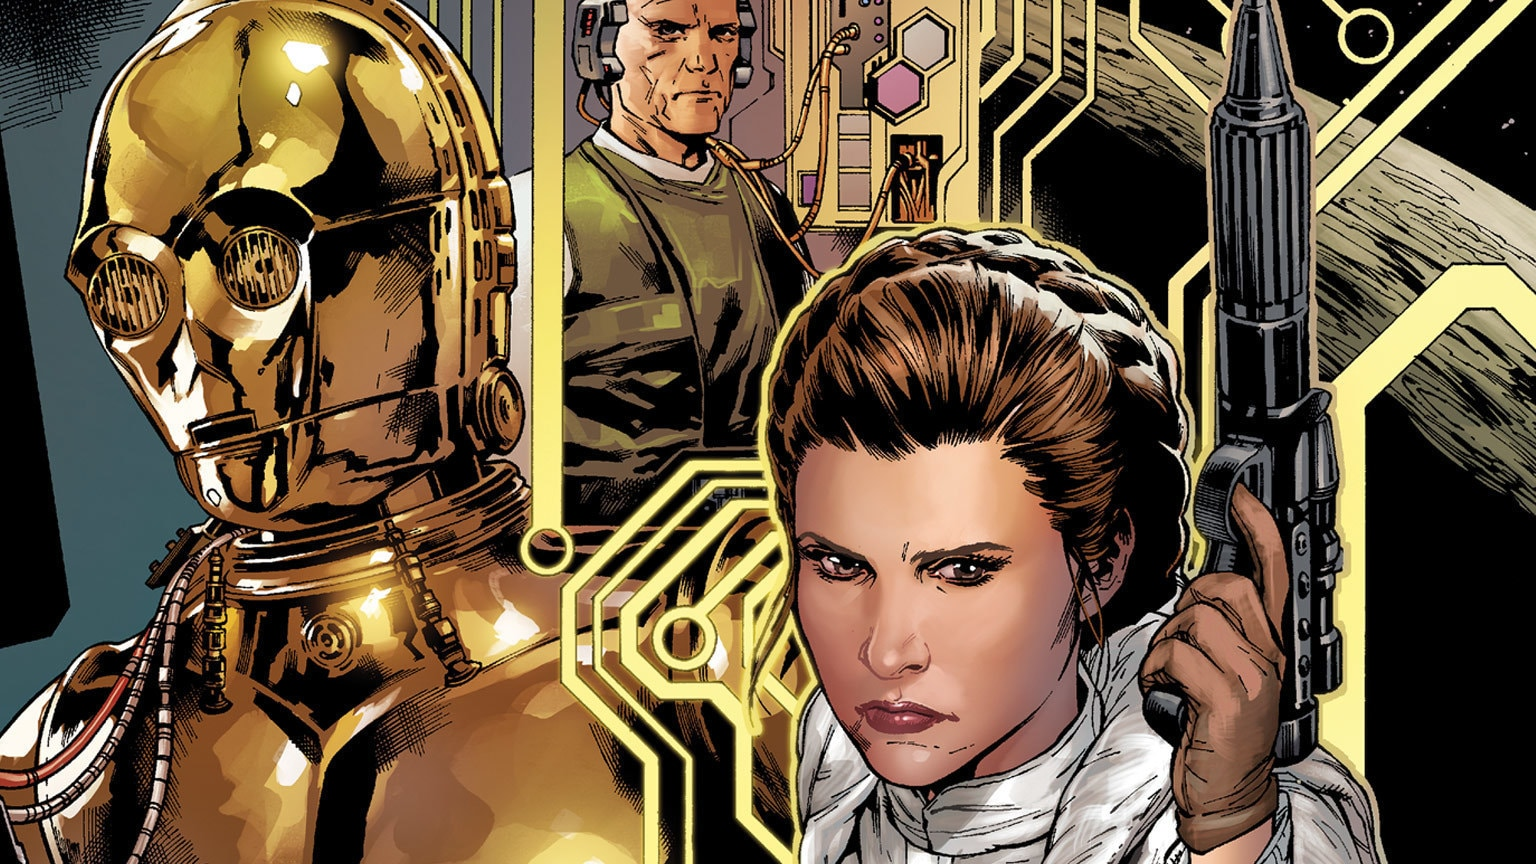 Luke, Leia, and Lando Plan a Heist in Marvel's Star Wars #9 – Exclusive Preview